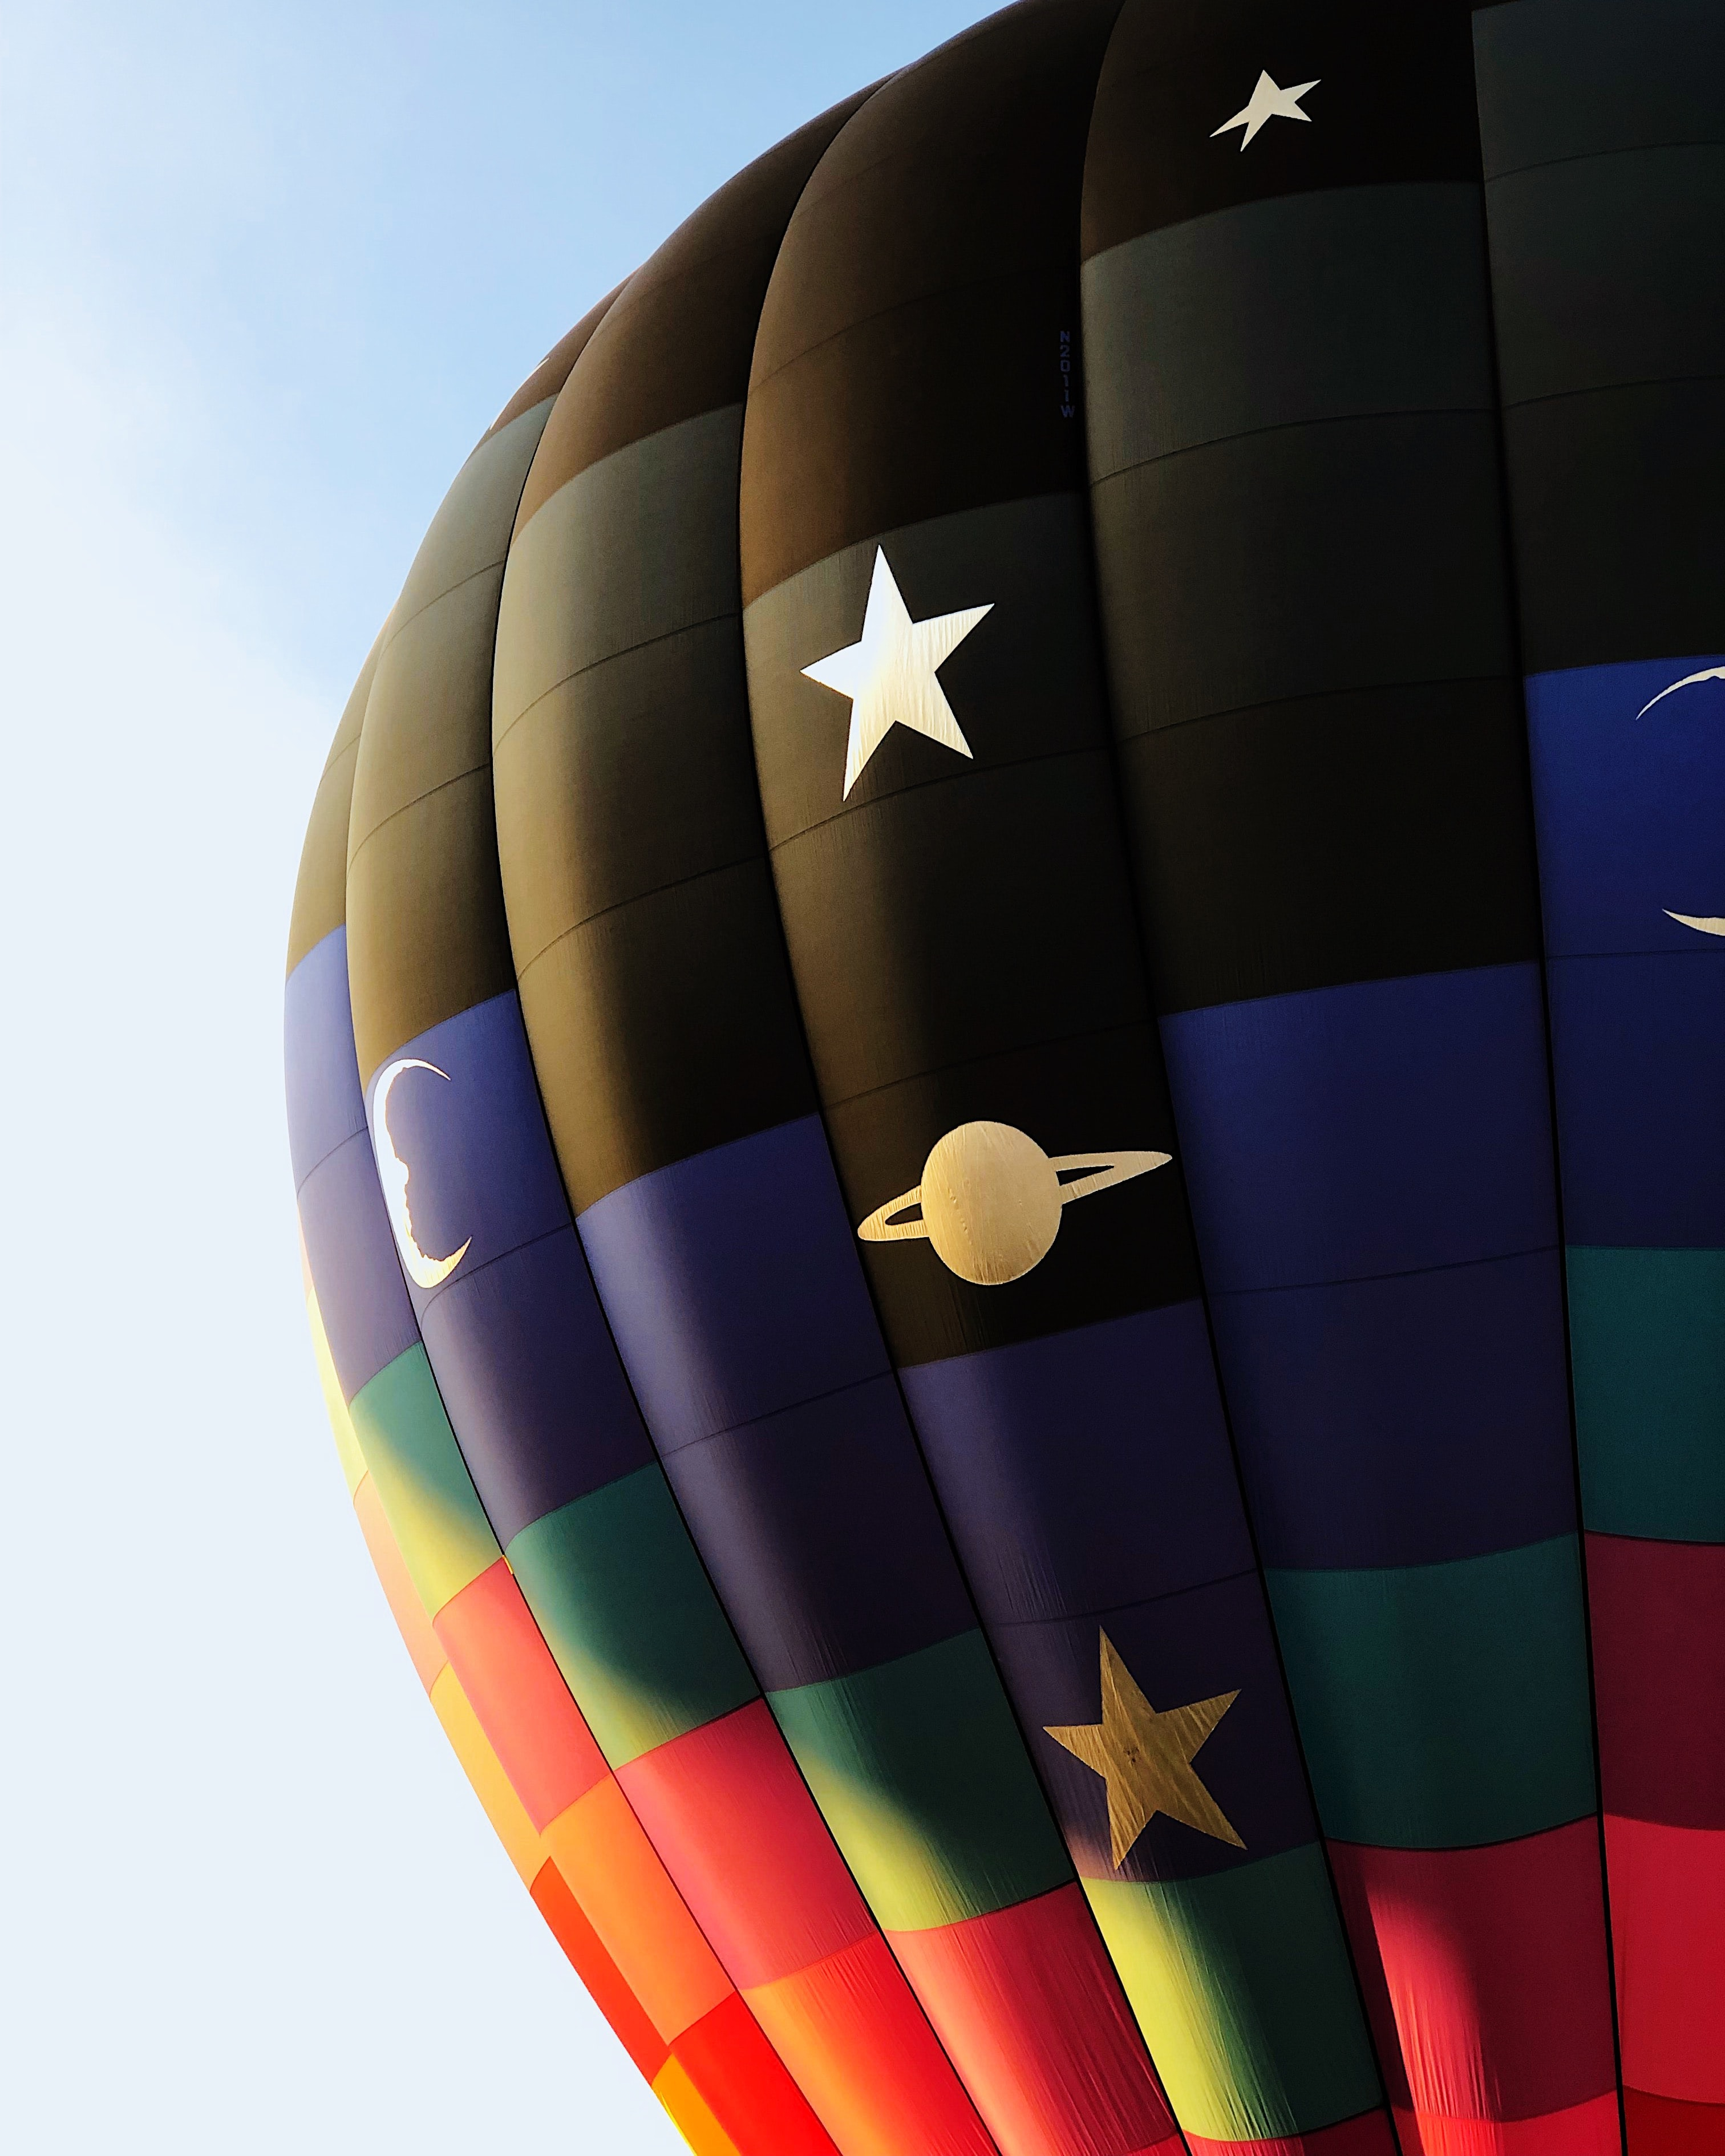 black, blue, and red hot air balloon during daytime